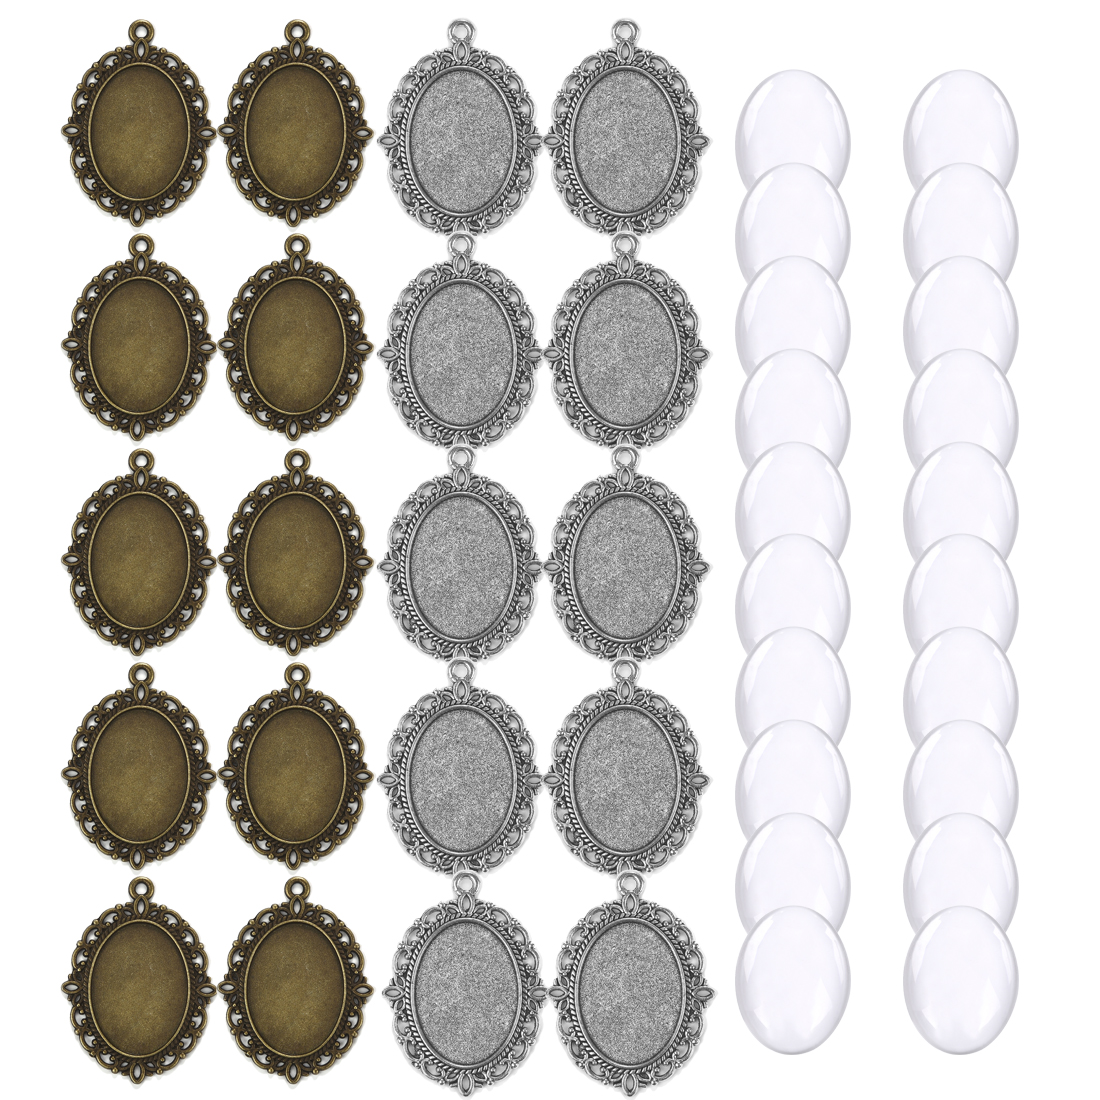 40pcs <font><b>Oval</b></font> Pendant Base Setting Glass <font><b>Cabochons</b></font> <font><b>18x25mm</b></font> Cameo For DIY Jewelry Making Pendants Blank Tray Bezels image